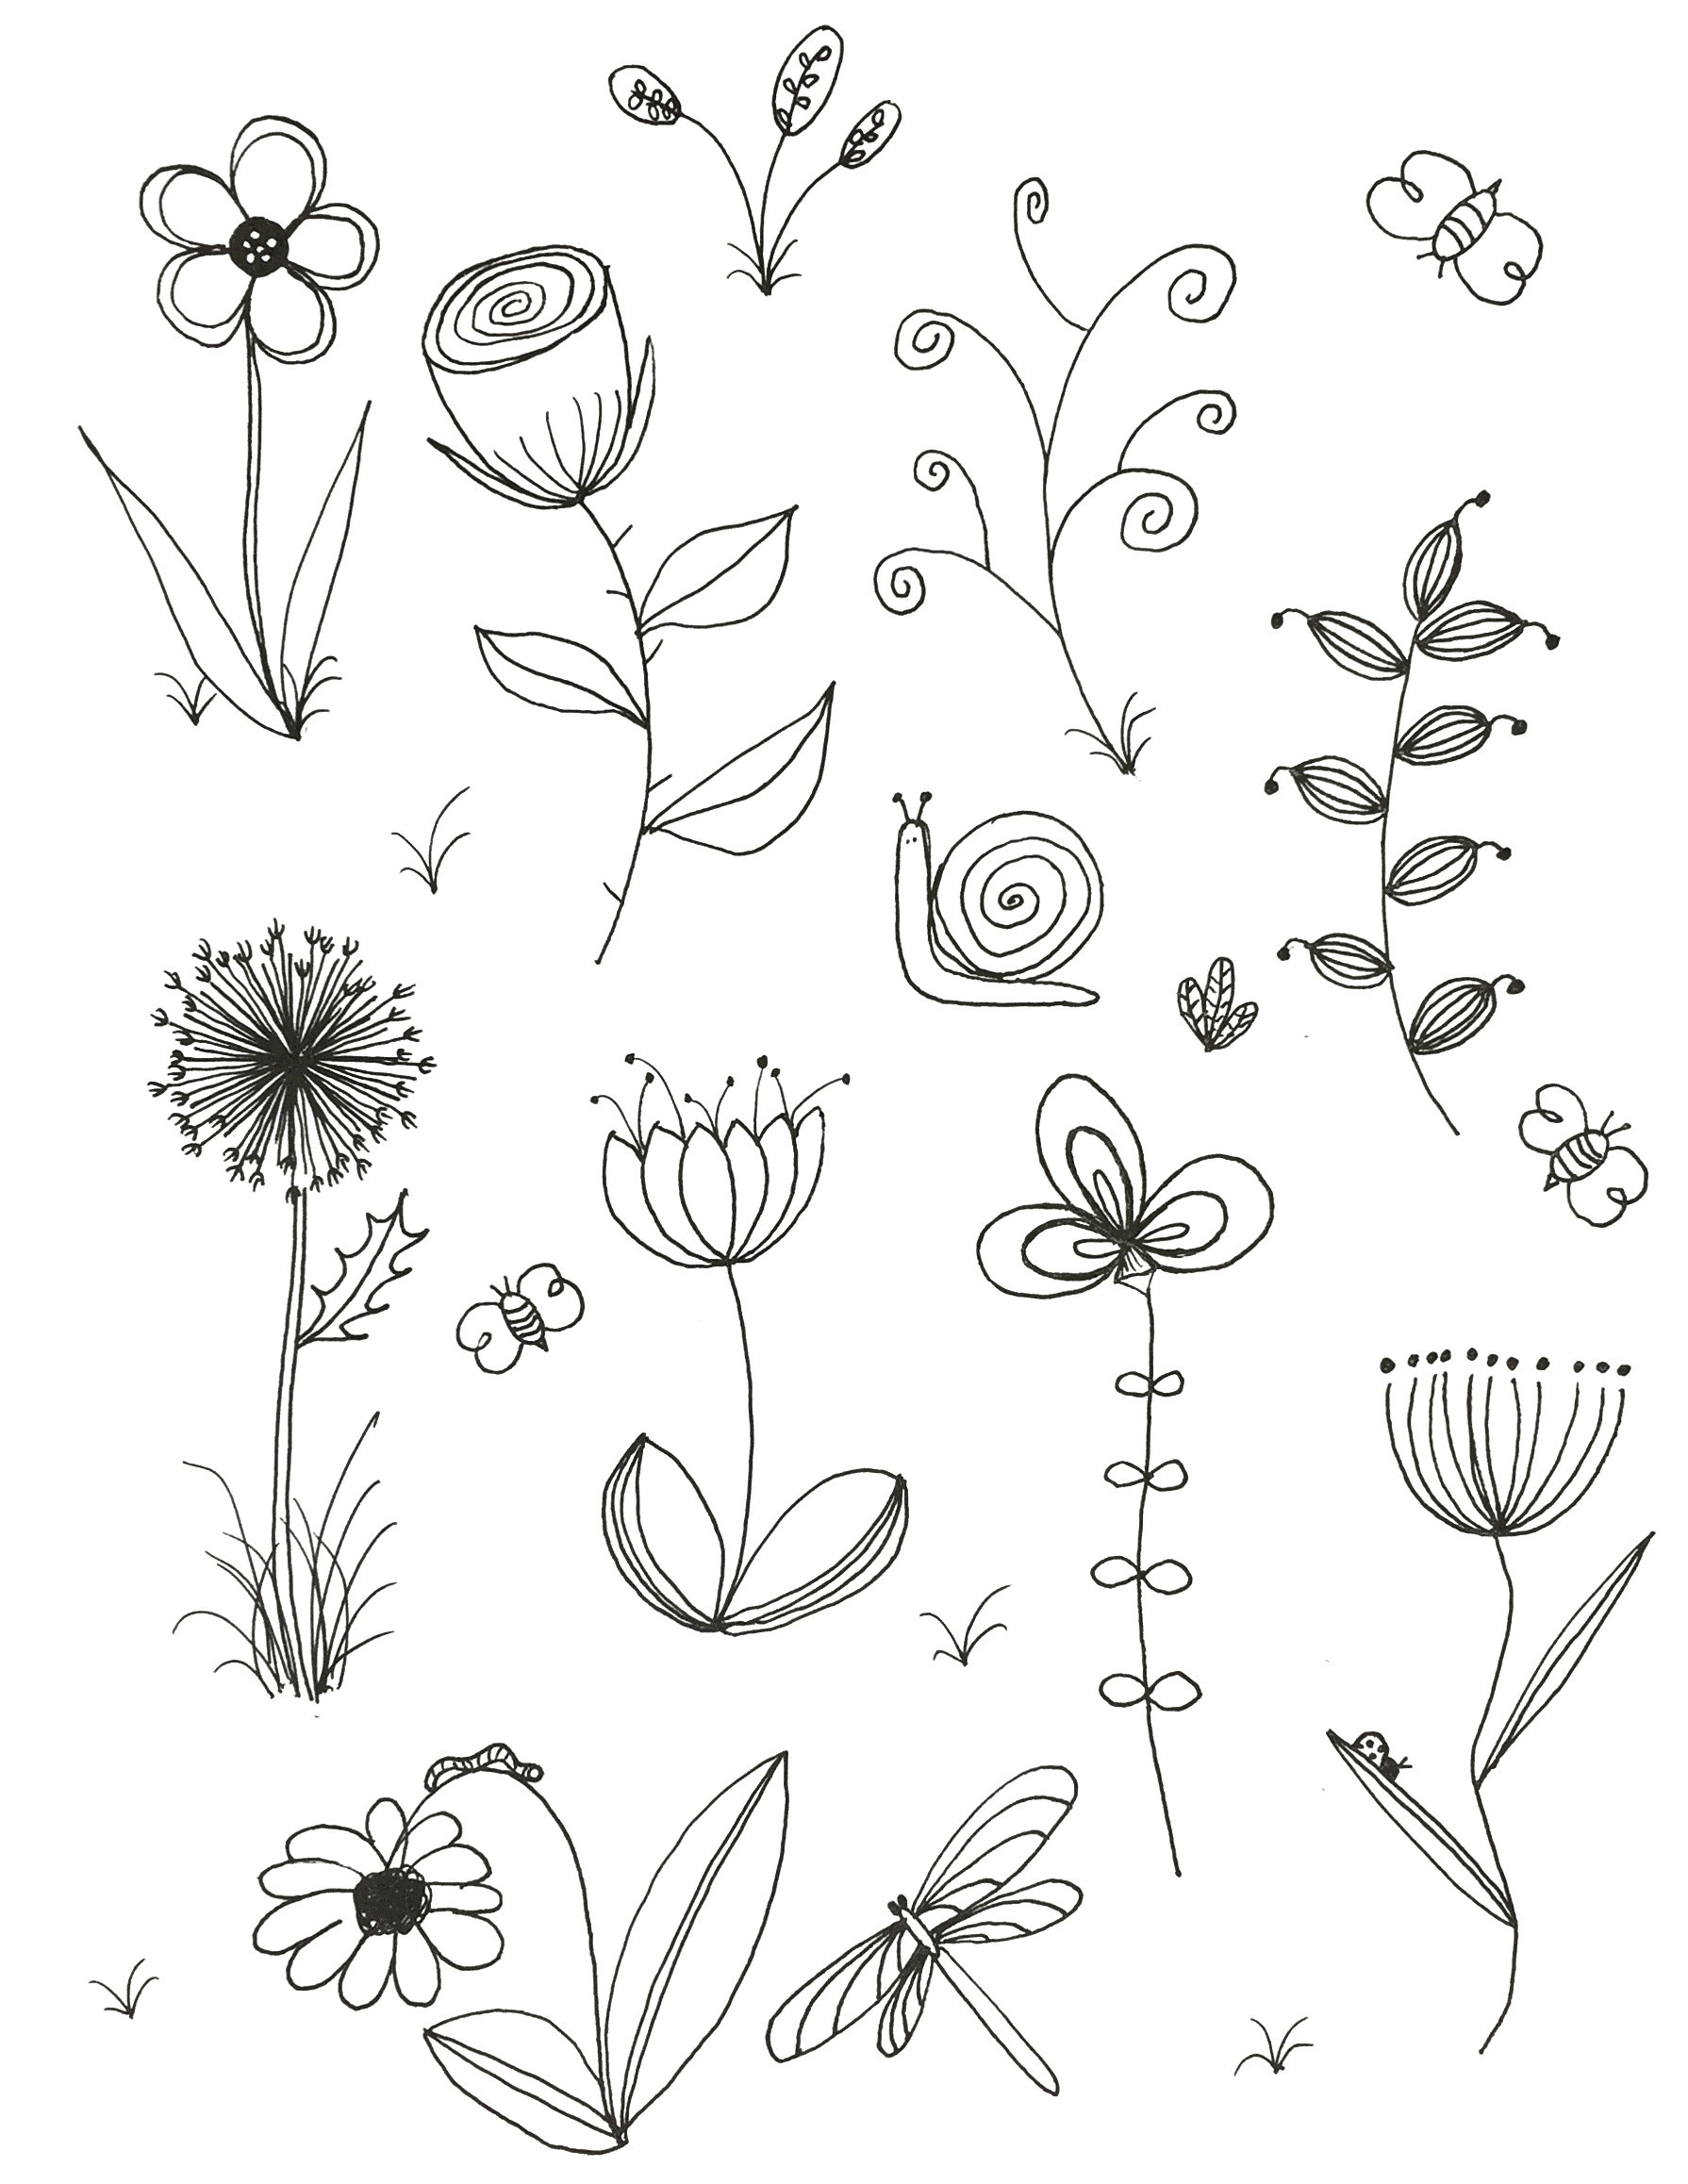 Drawing Flowers Doodling How to Do Doodle Art Fresh Easy Flowers to Draw Doodle Art Hd